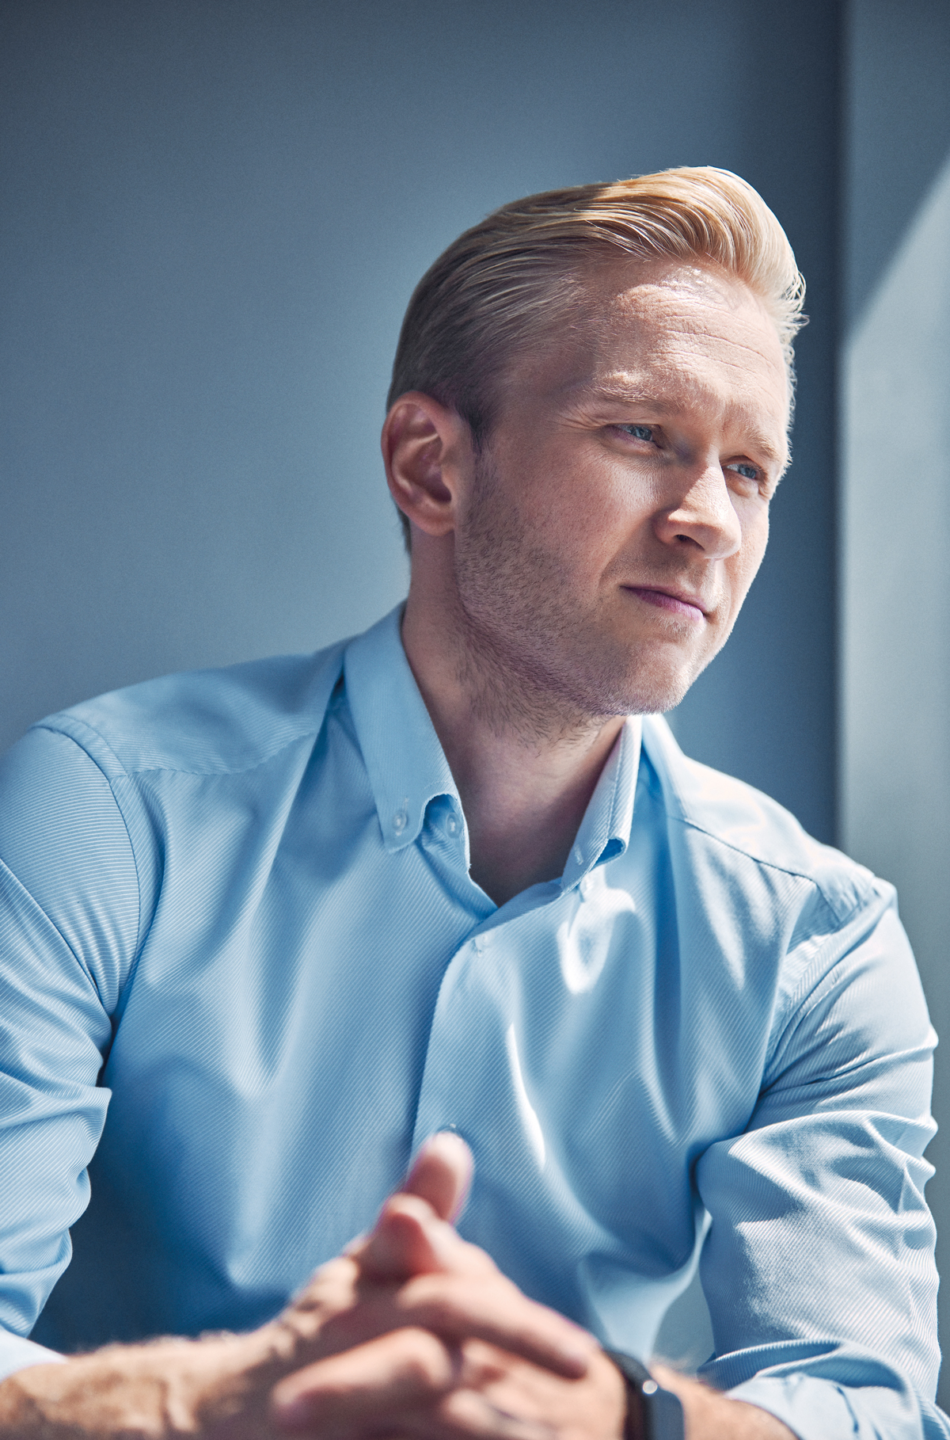 Eero Ståhlberg: Sustainability Needs To Be At The Core Of Strategy And Business Models